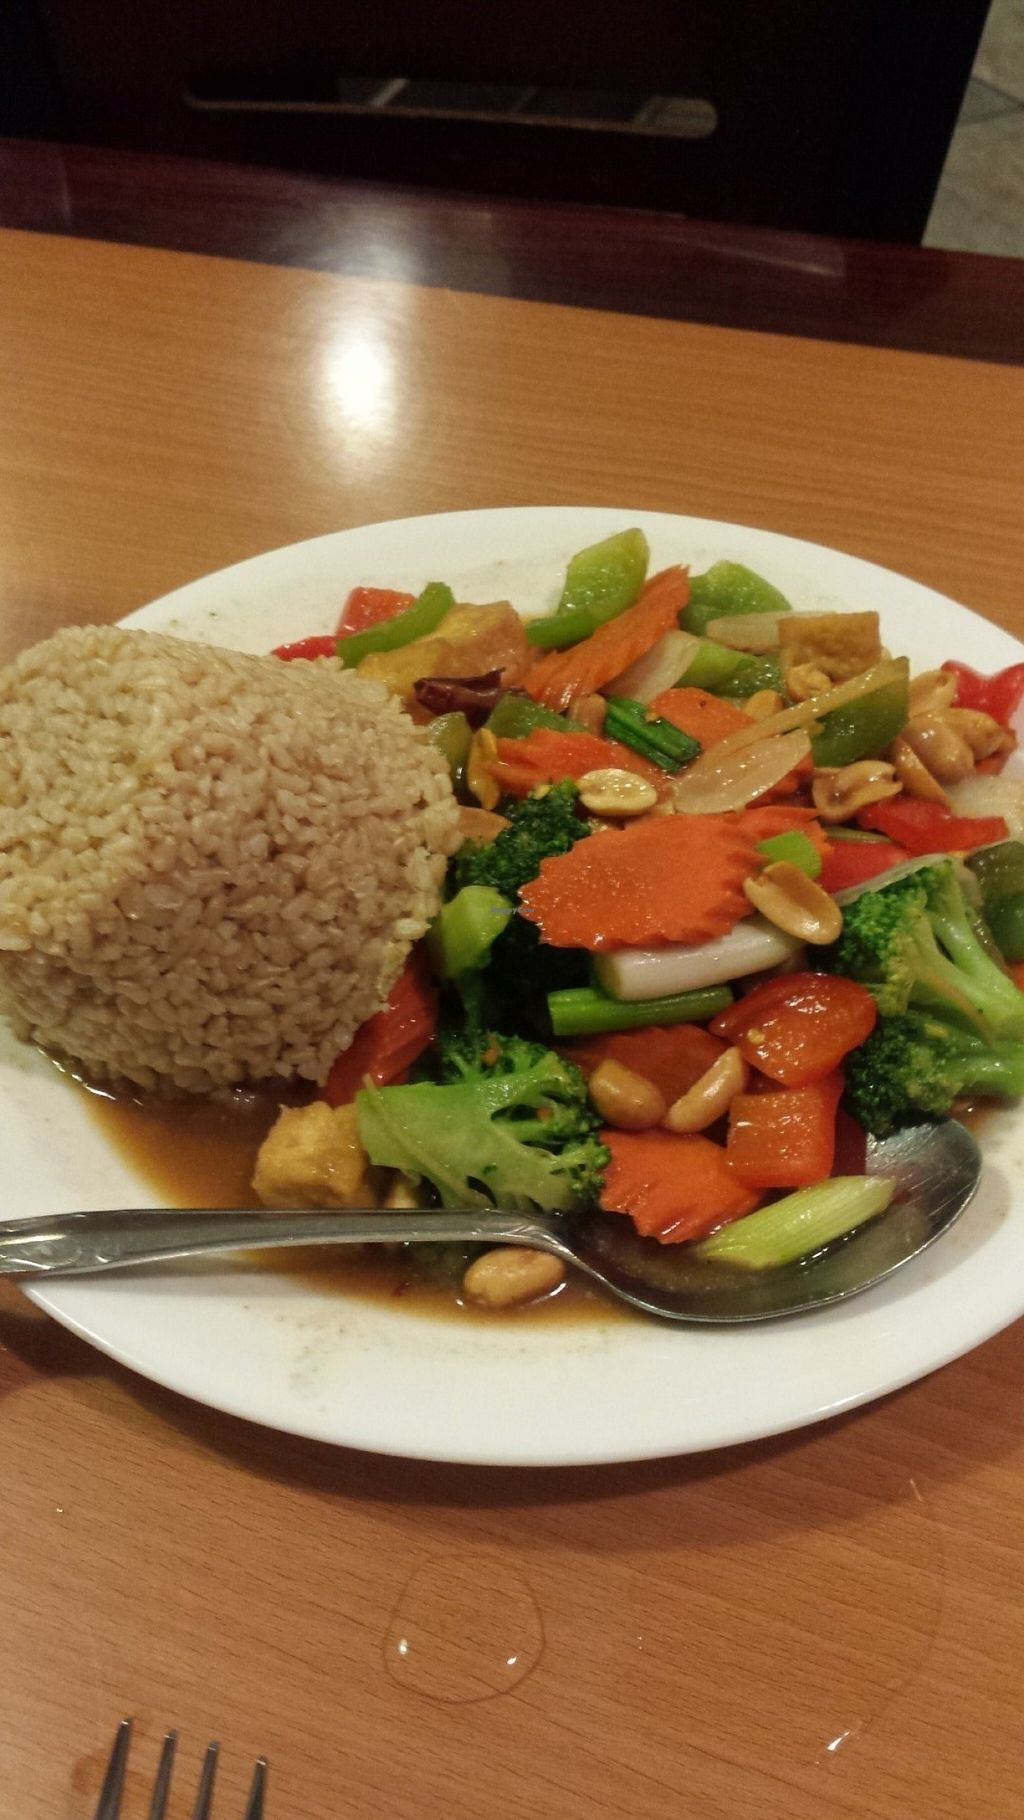 """Photo of CLOSED: The Vegan Joint - Hollywood  by <a href=""""/members/profile/arb84820"""">arb84820</a> <br/>Kung pao <br/> July 29, 2016  - <a href='/contact/abuse/image/35252/163037'>Report</a>"""